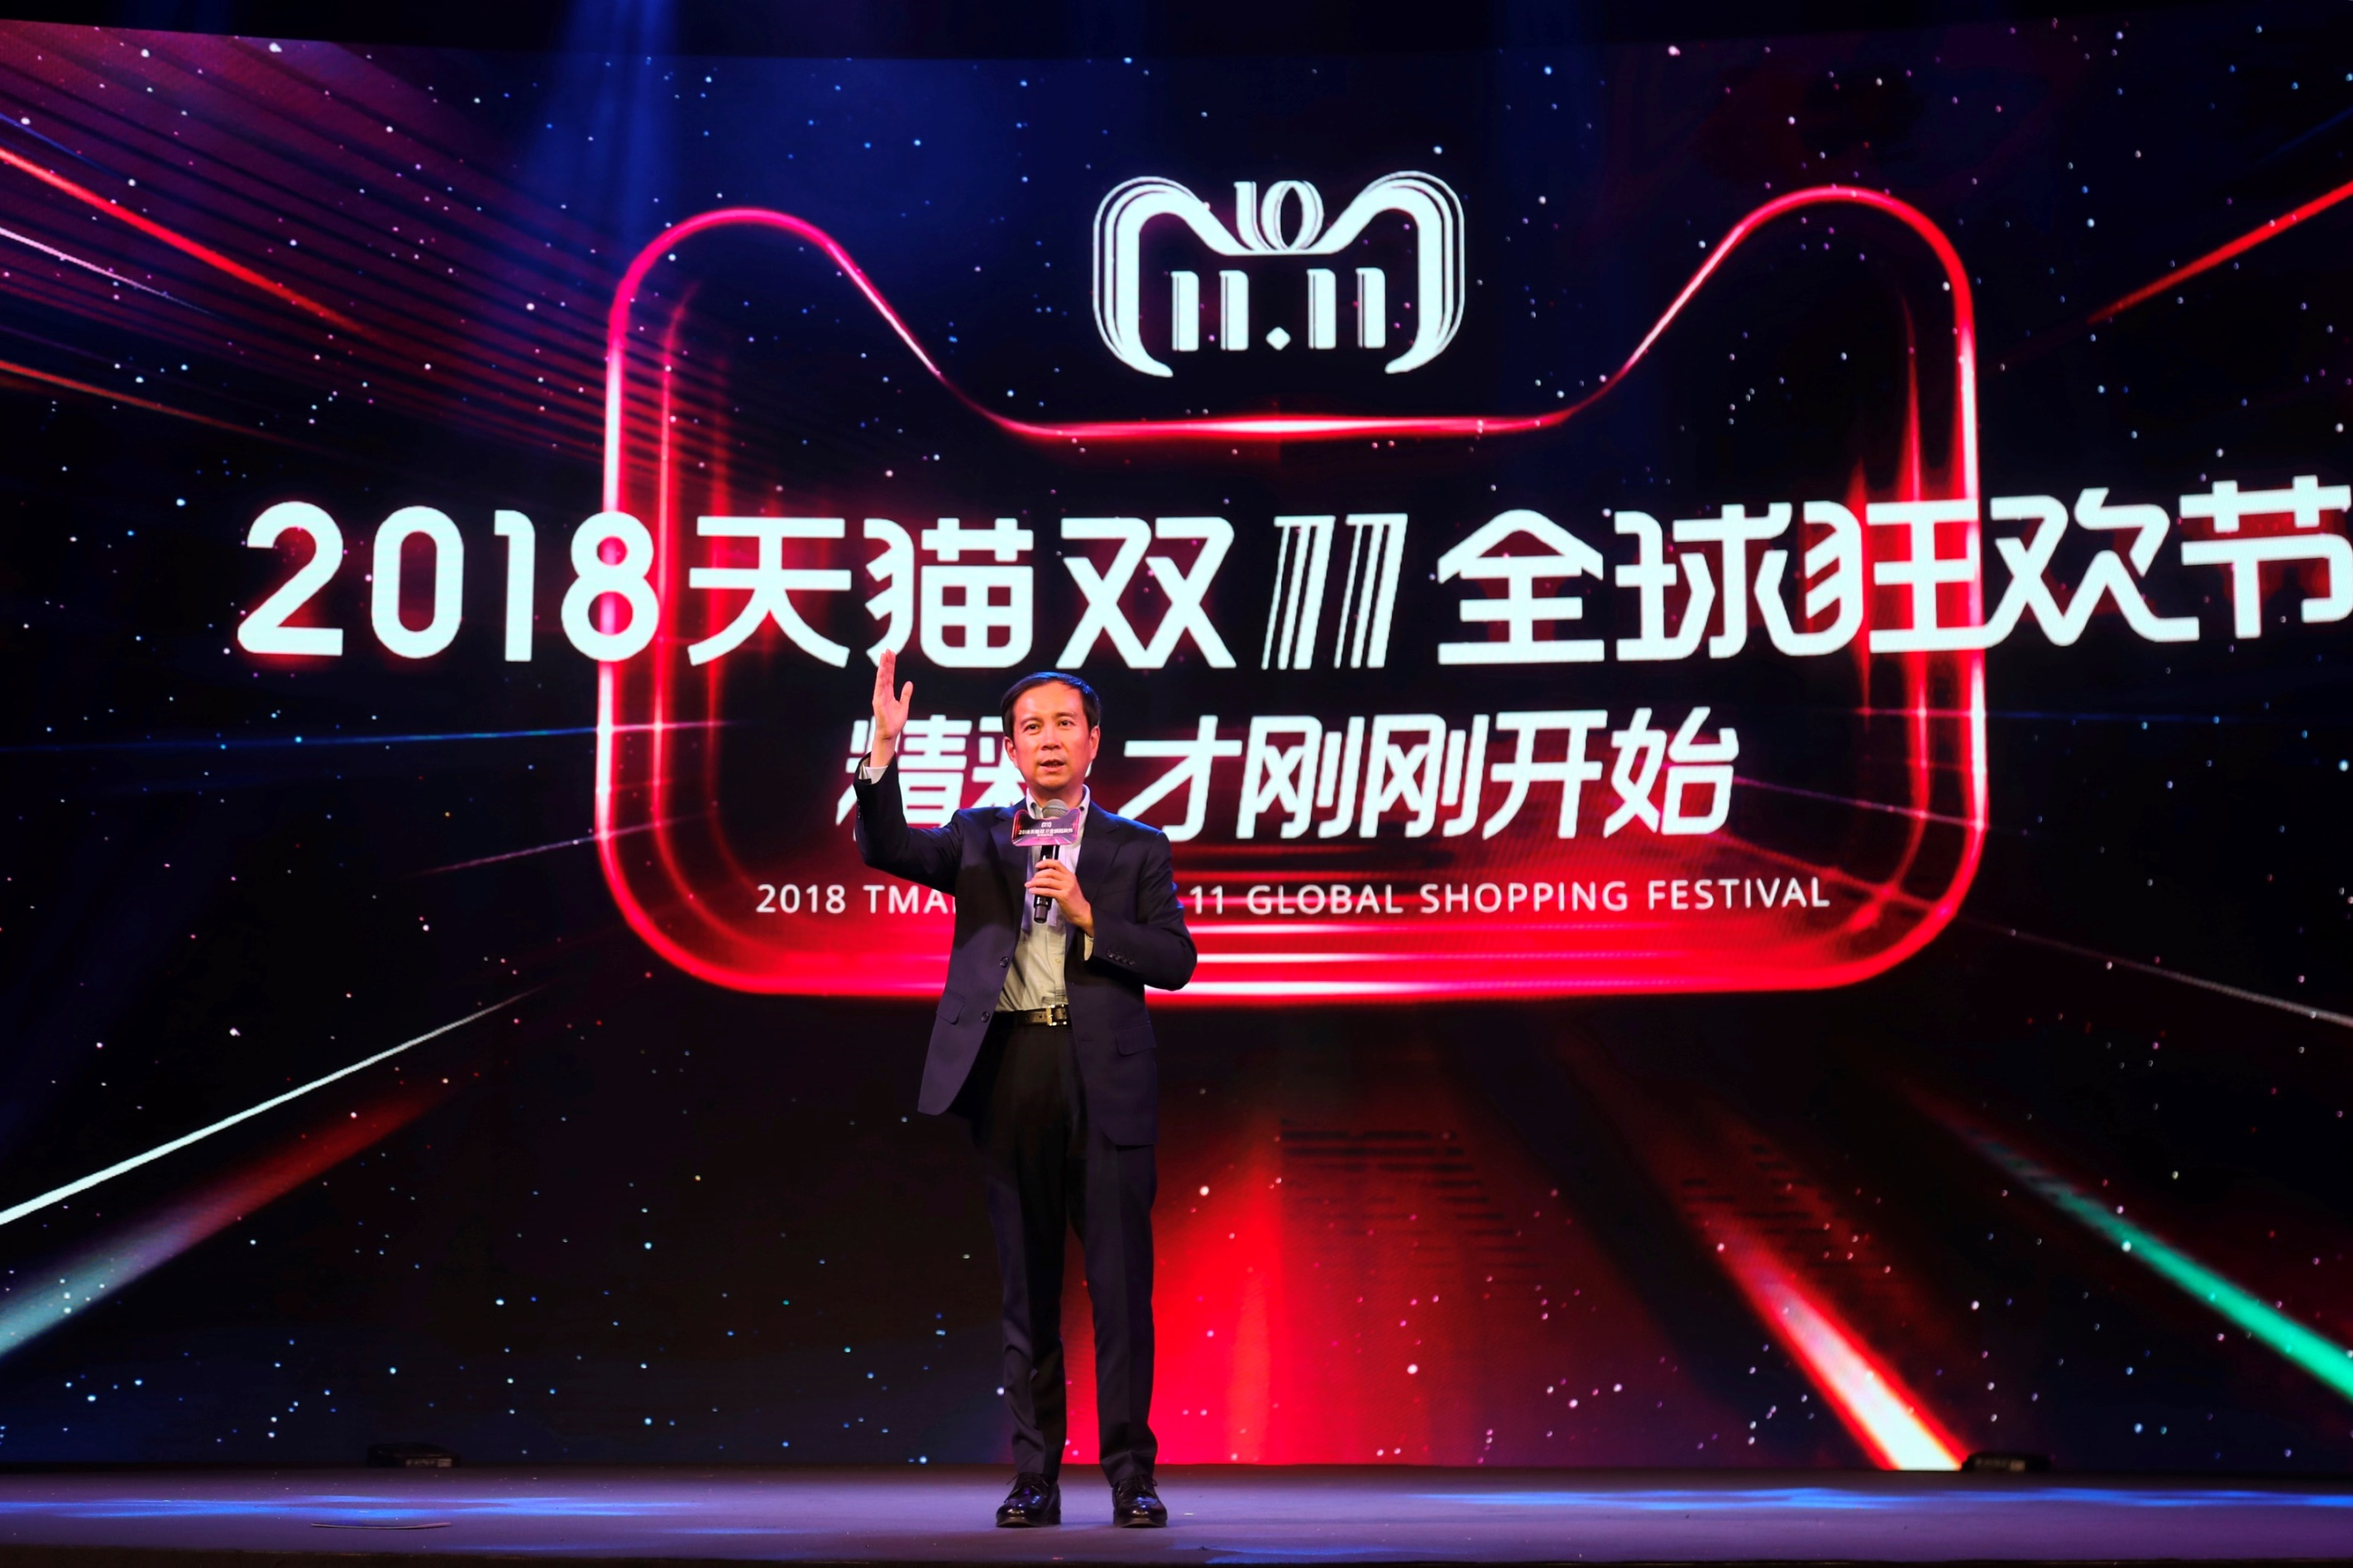 1-News-Alibaba Group CEO Daniel Zhang speaks at the 11.11 kick-off press conference in Beijing